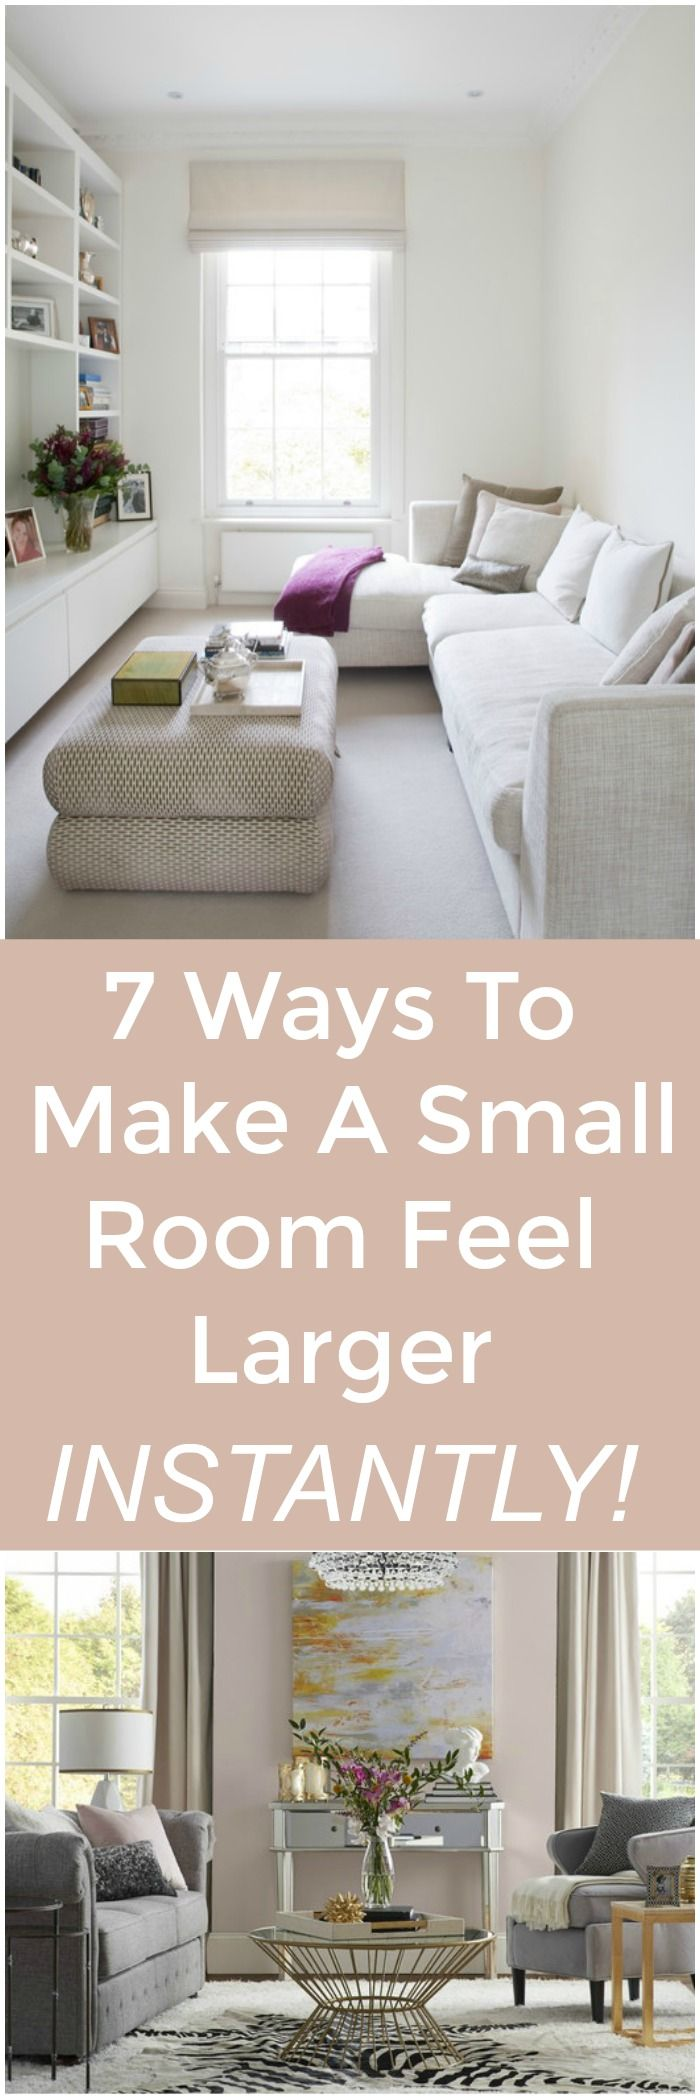 best 25 small den ideas on pinterest small den 21284 | 0335f24e6bc1250ca5018b6f212ccba3 condos apartment ideas